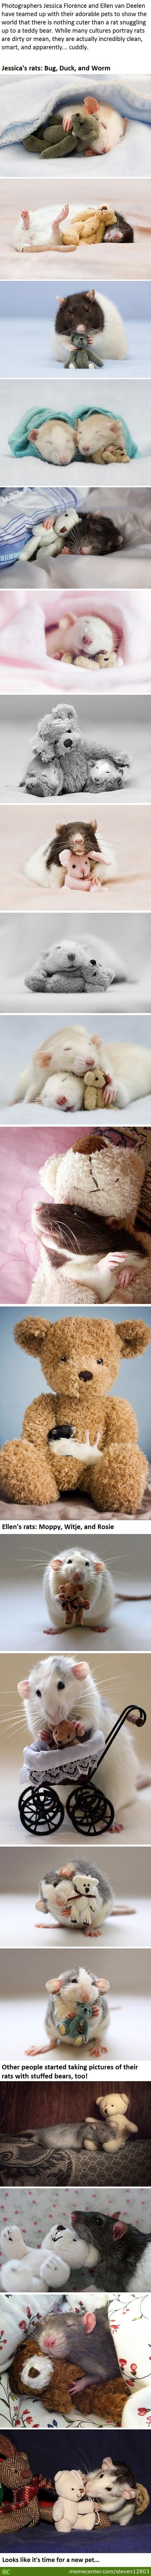 Cute Pictures Of Rats Exist?